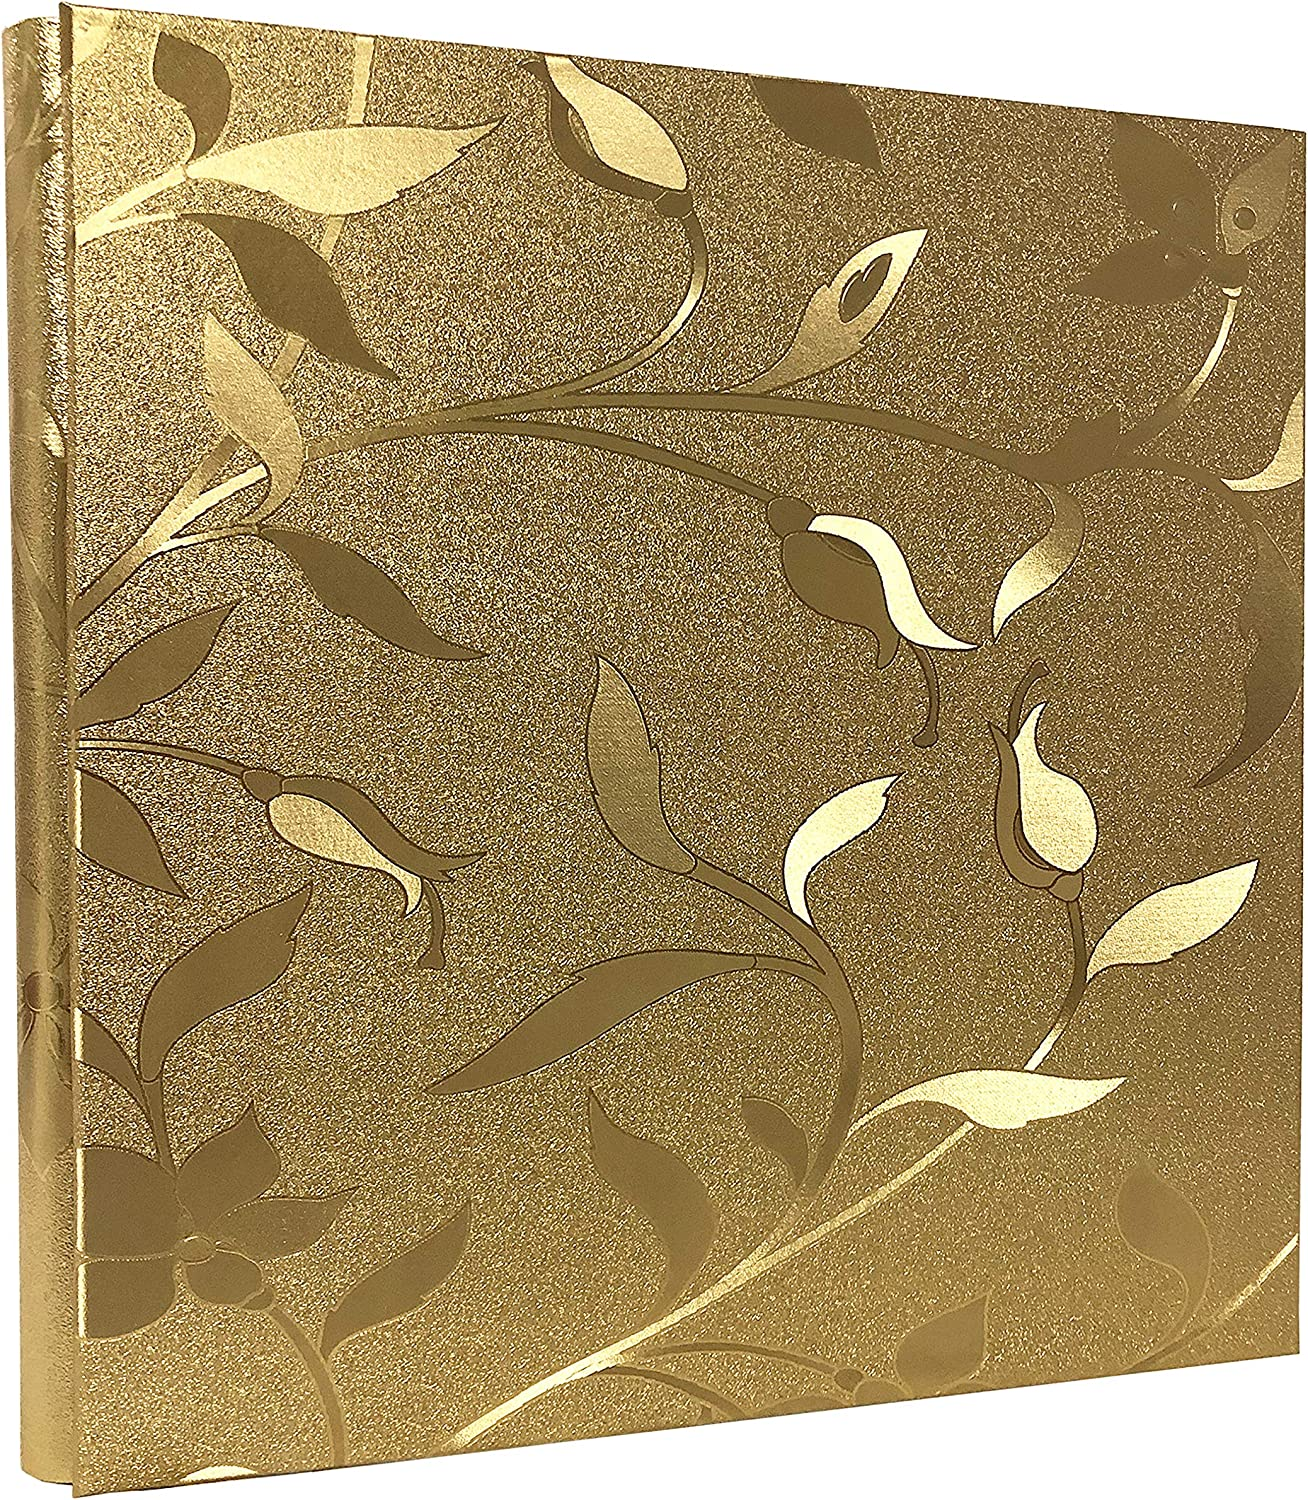 RECUTMS 600 Photo Picture Album PU Leather Cover Sewn Bonded Memo Album Slots Album Holds 4x6 Photos 5 Per Page Family Album Gift for Mother Father (Gold L-Leaf)